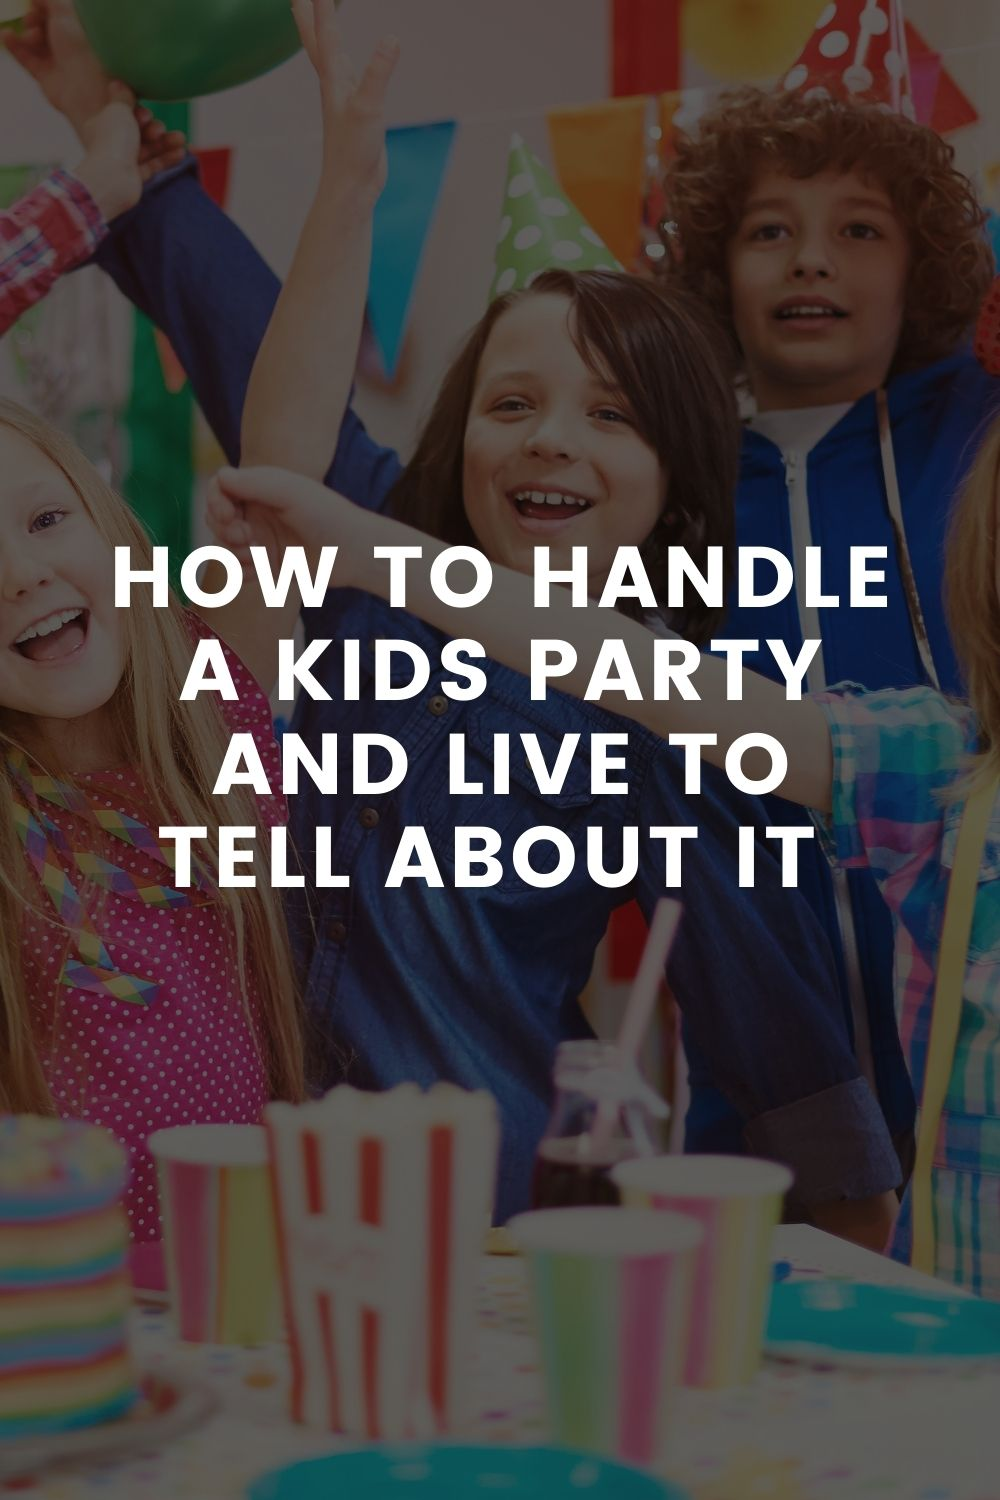 How To Handle A Kids Party And Live To Tell About It